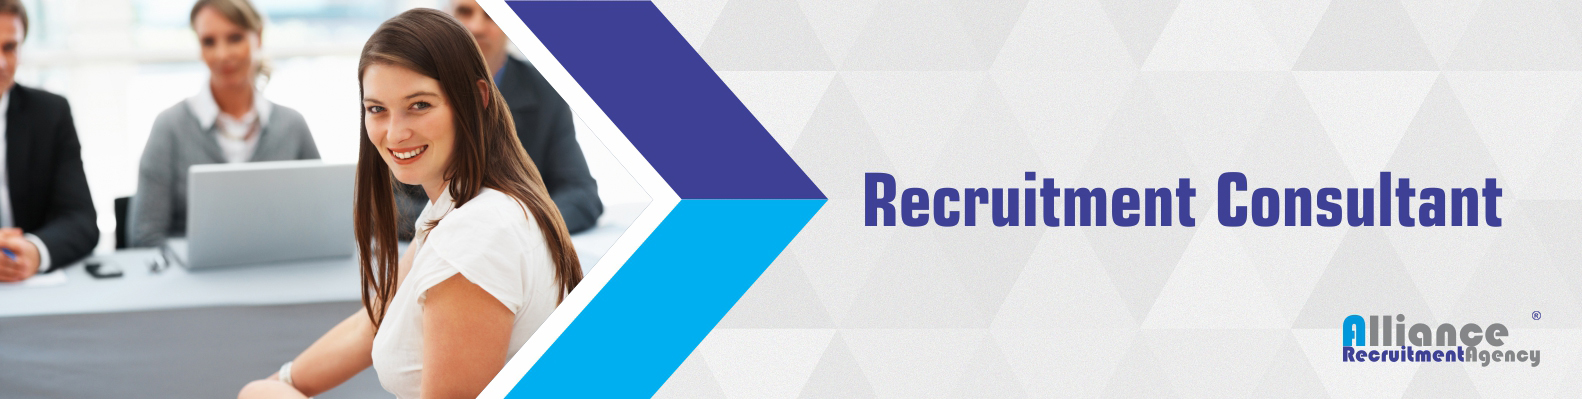 Recruitment Consultant Services –Best Recruitment Agency in India